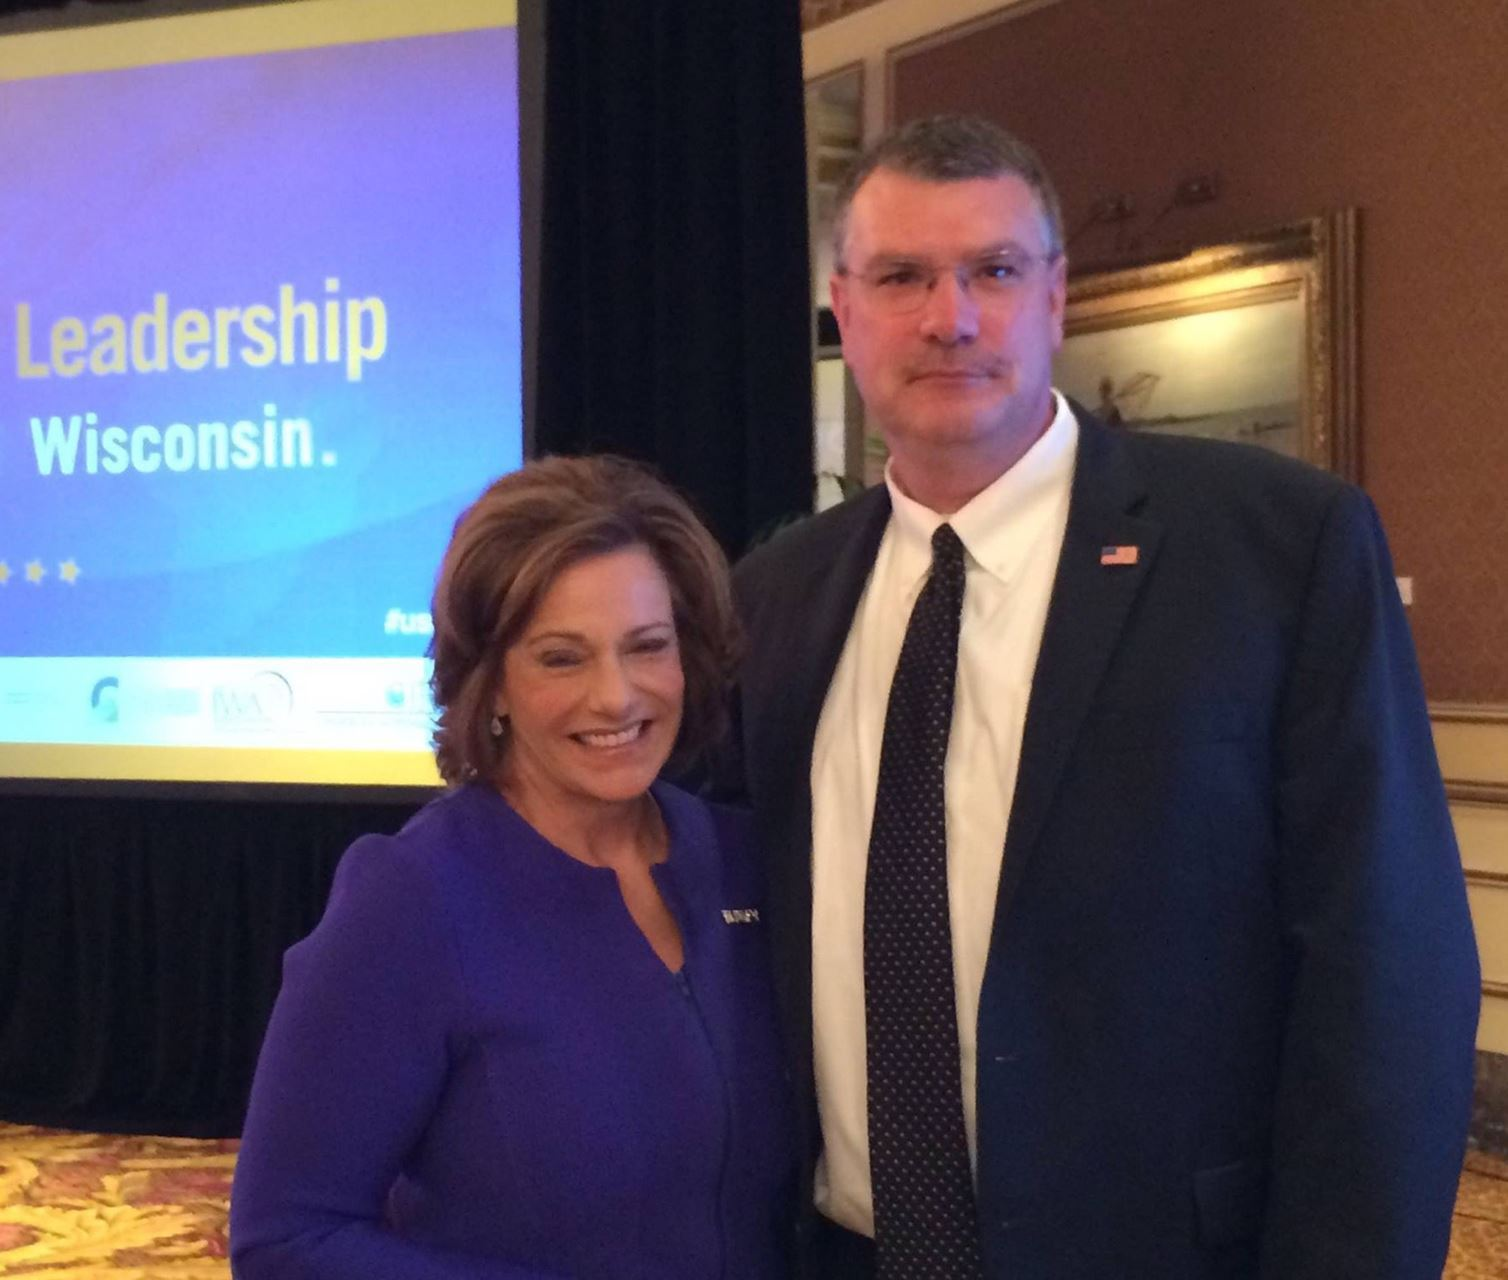 Former National Security Advisor KT McFarland and executive Director Steve Kohlmann